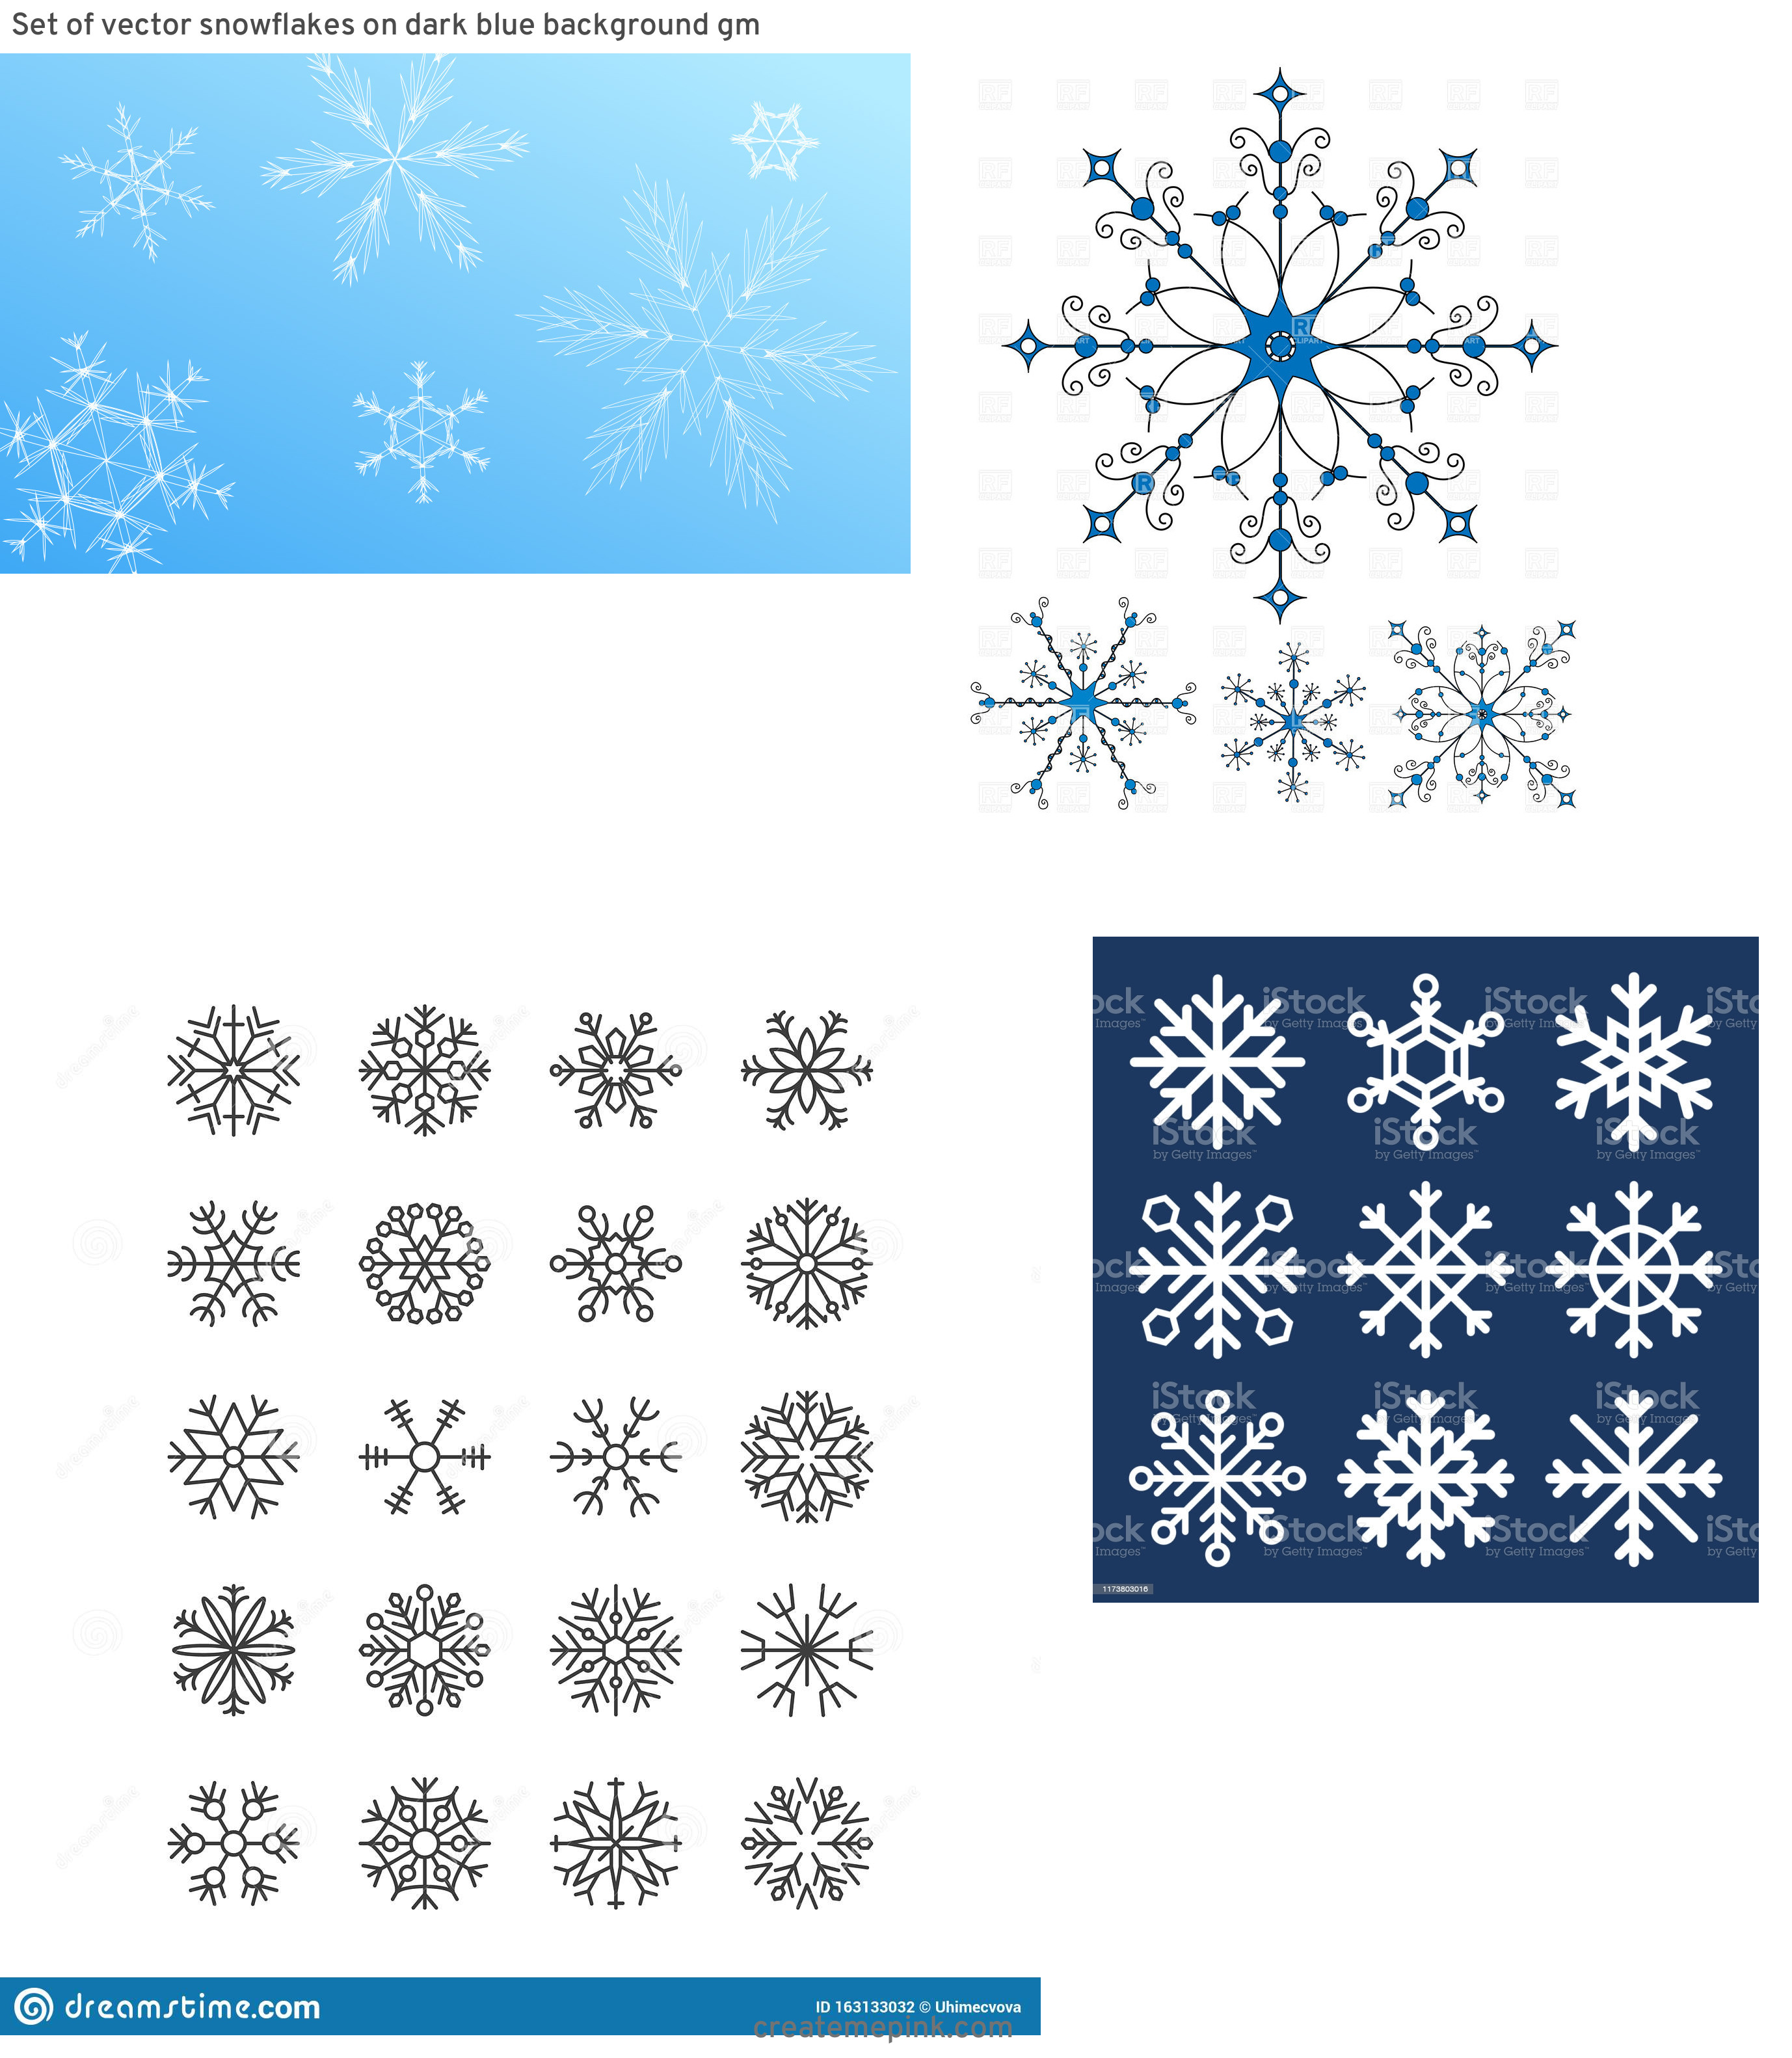 Free Vector Snow Flakes: Set Of Vector Snowflakes On Dark Blue Background Gm